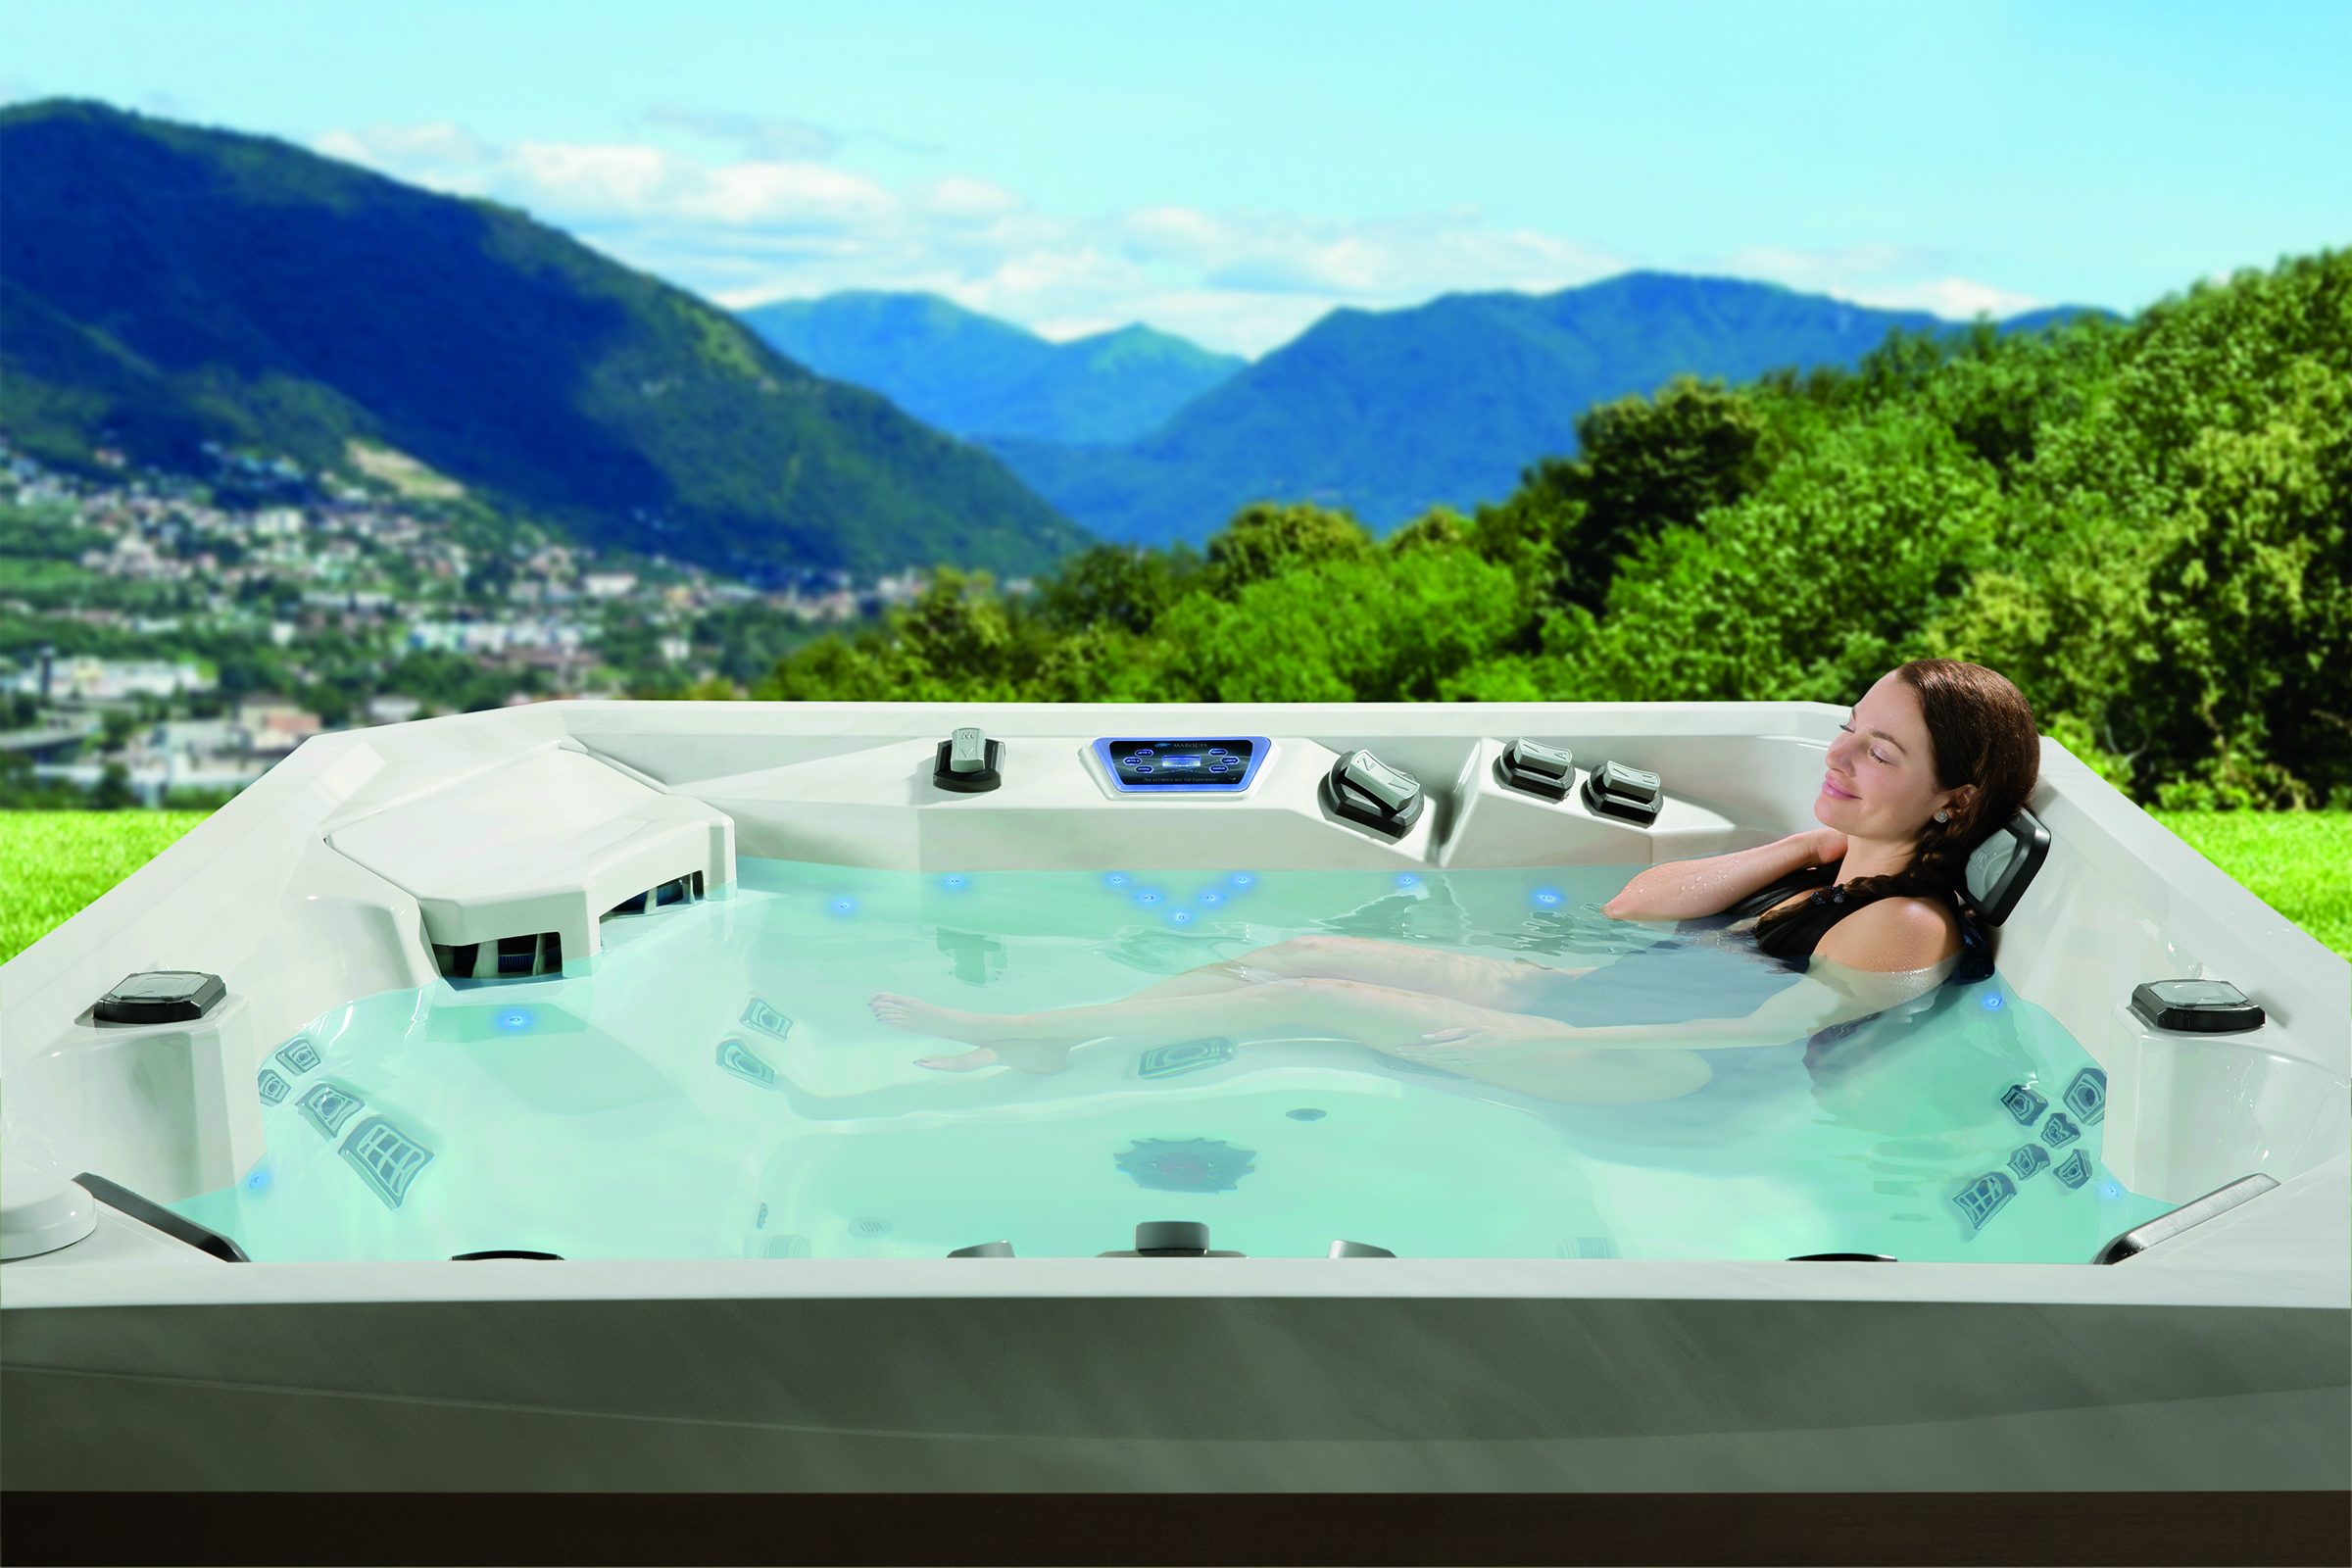 spring cleaning, don't forget your hot tub!